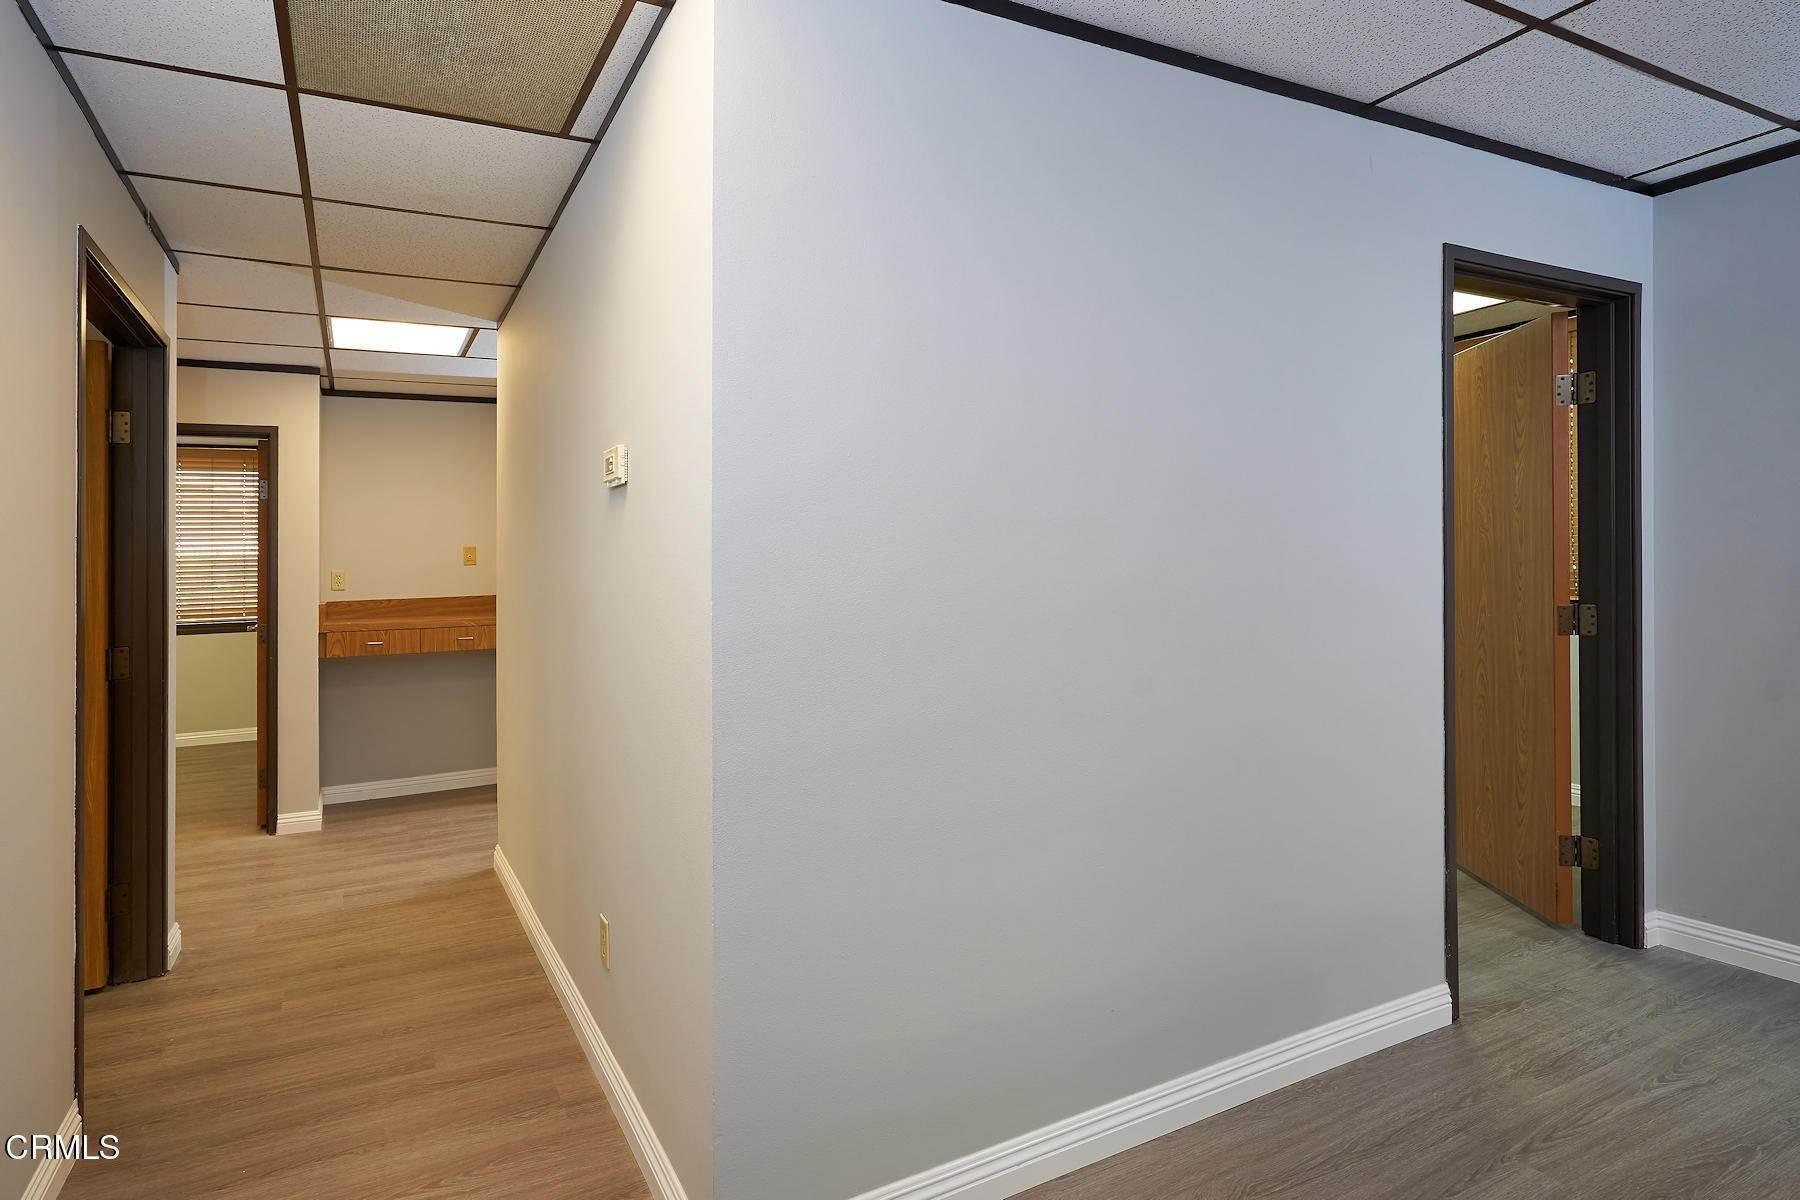 7. Offices for Sale at 921 West 7th Street Oxnard, California 93030 United States